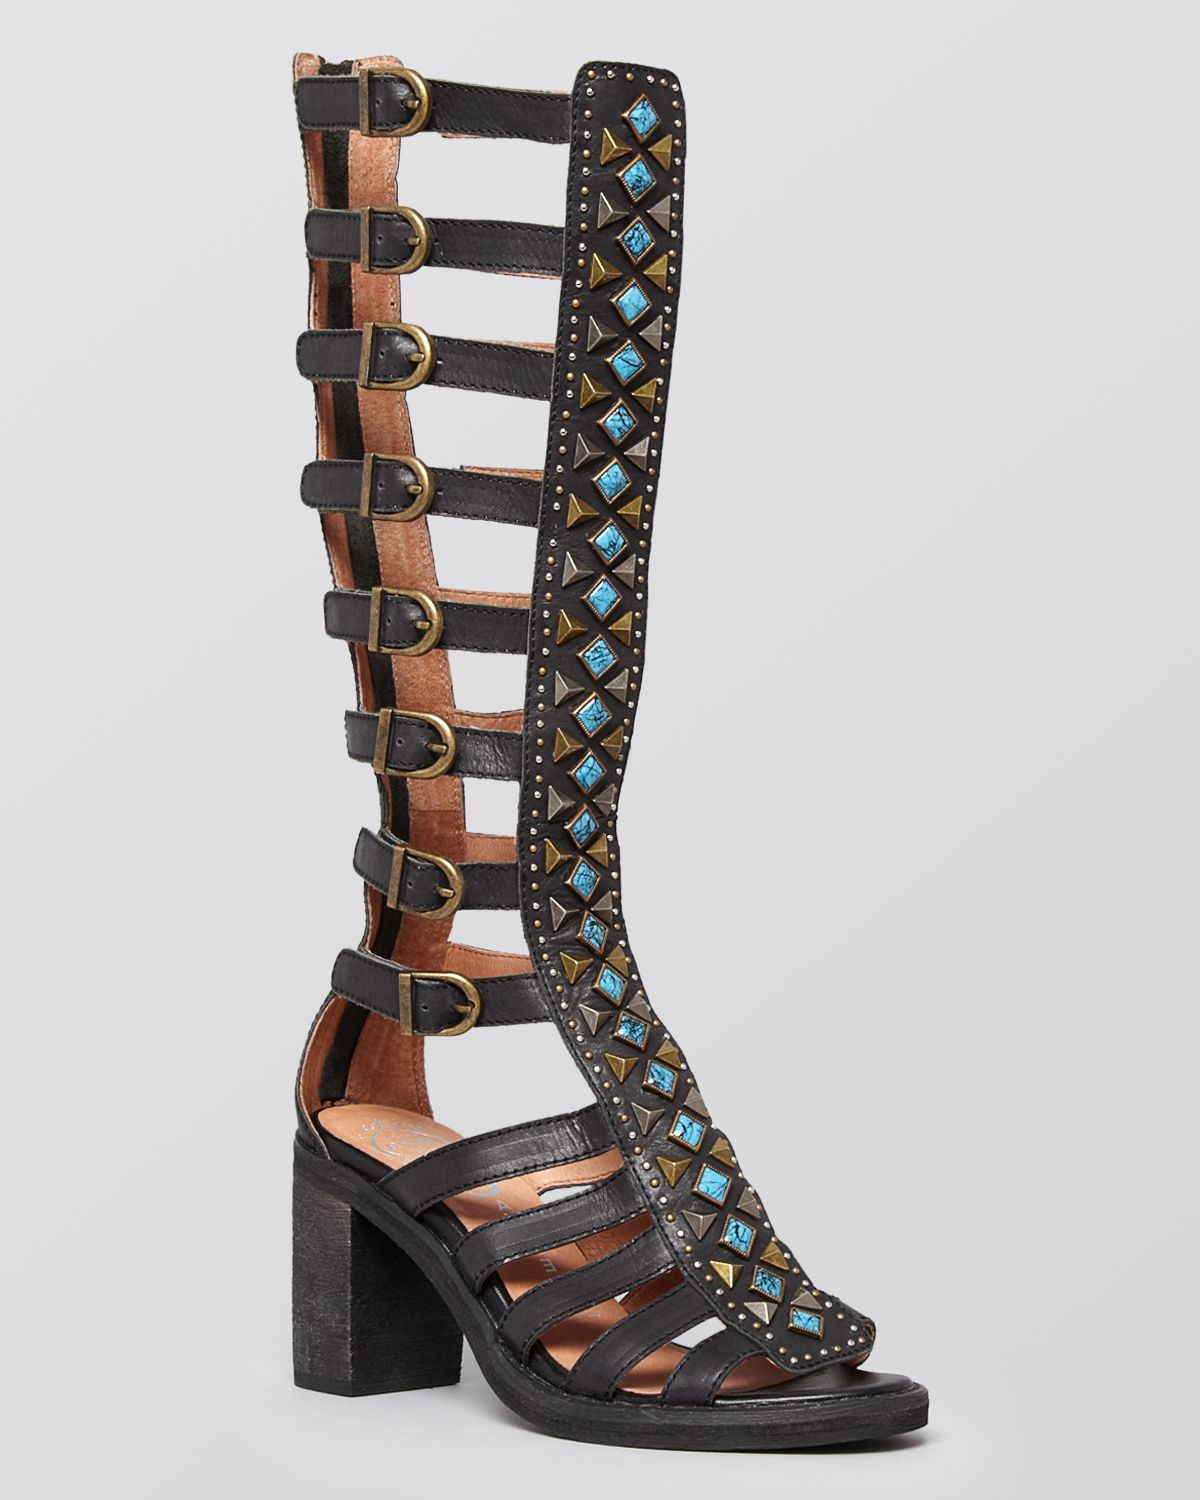 Jeffrey Campbell Tall Gladiator Sandals Sade In Black